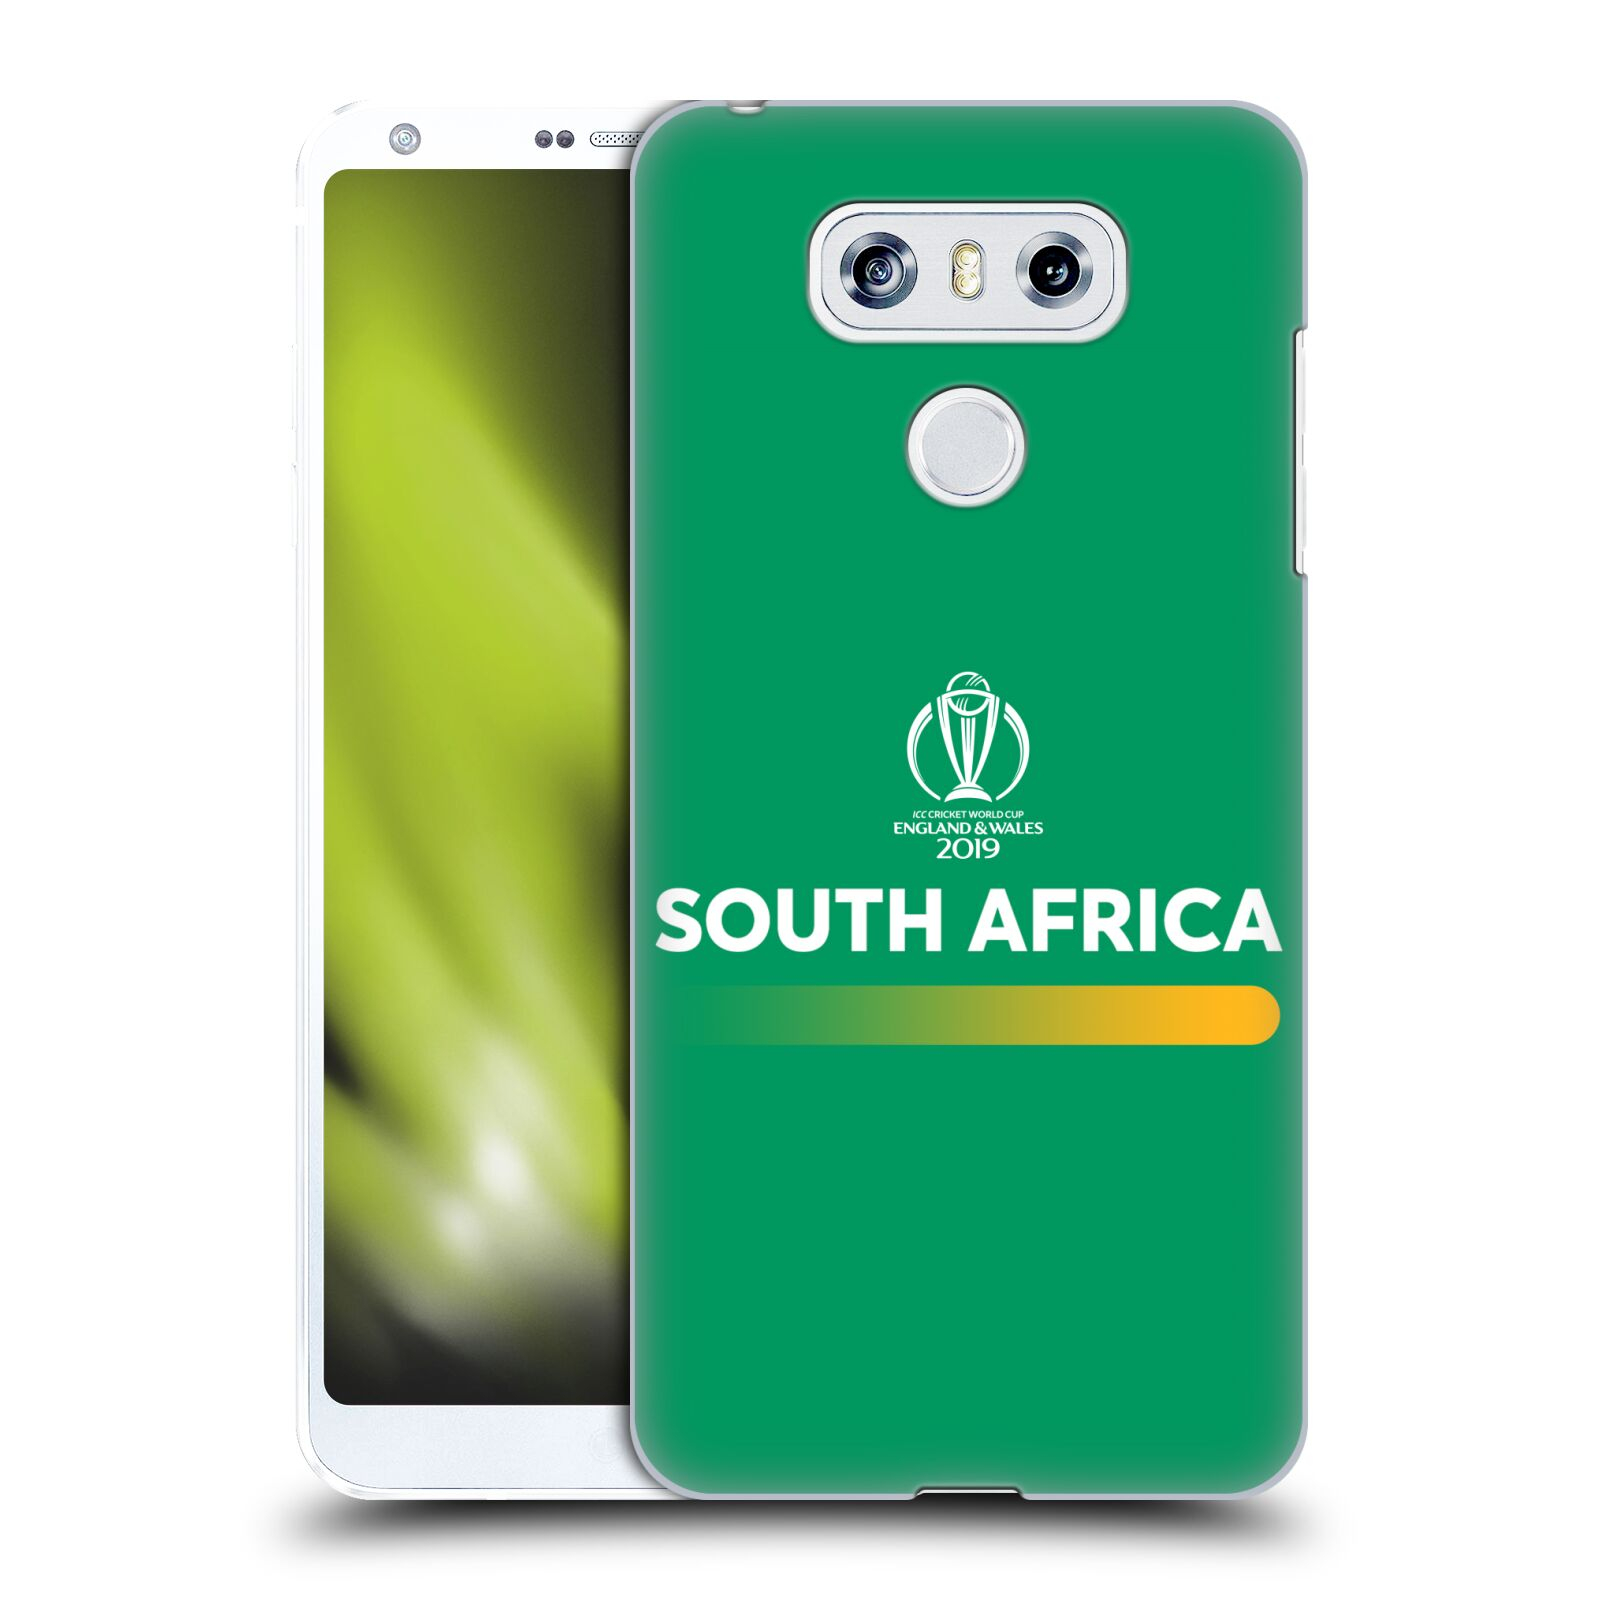 OFFICIAL-ICC-SOUTH-AFRICA-HARD-BACK-CASE-FOR-LG-PHONES-1